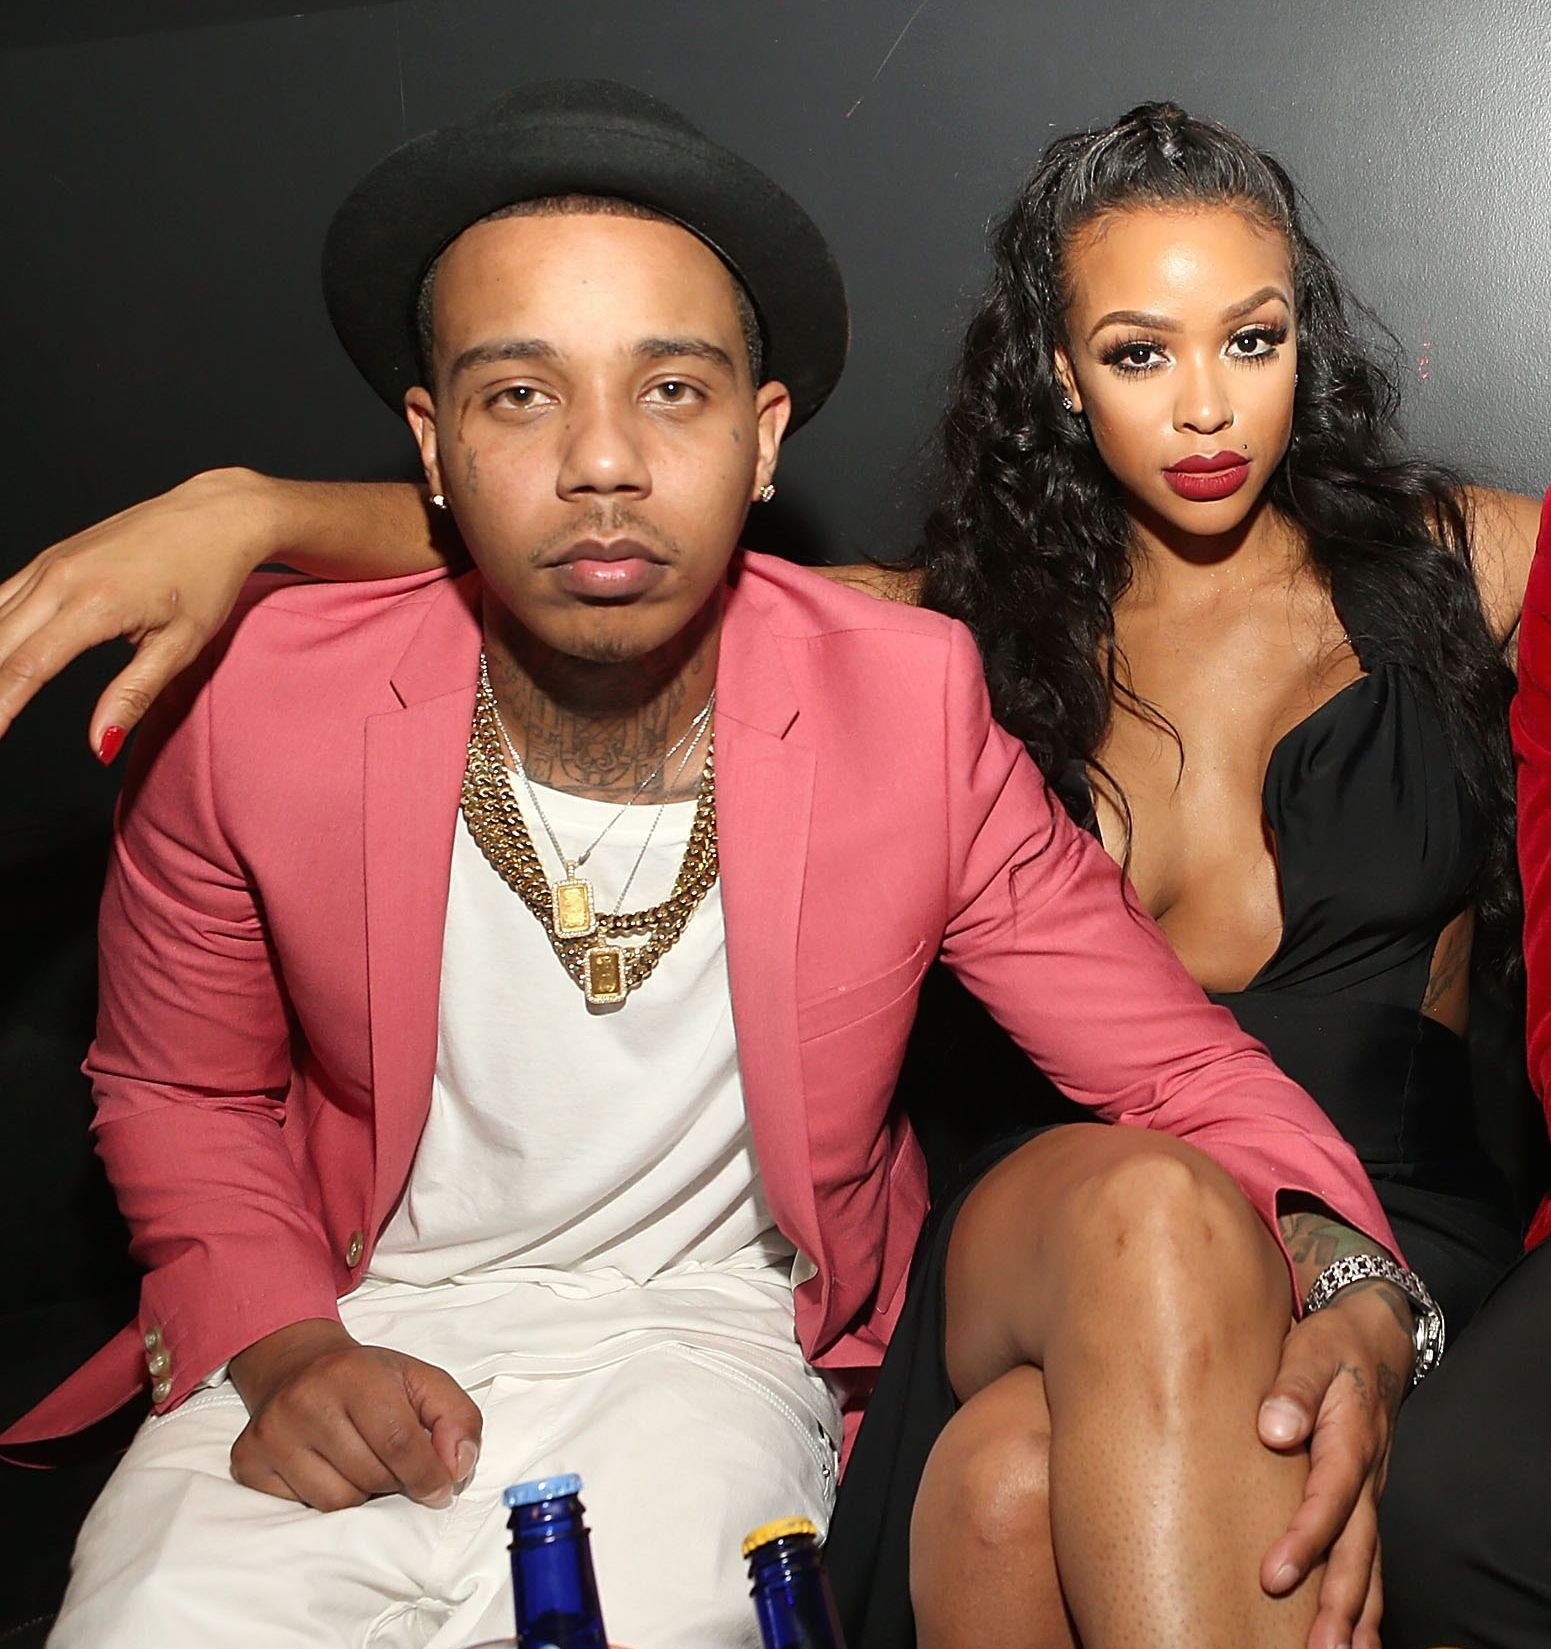 'Love and Hip Hop Hollywood' Cast Members; Masika and Yung Berg Dating?  Stars Say They're 'Very Supportive, Close Friends' [AUDIO] [EXCLUSIVE] :  Celebrities ...